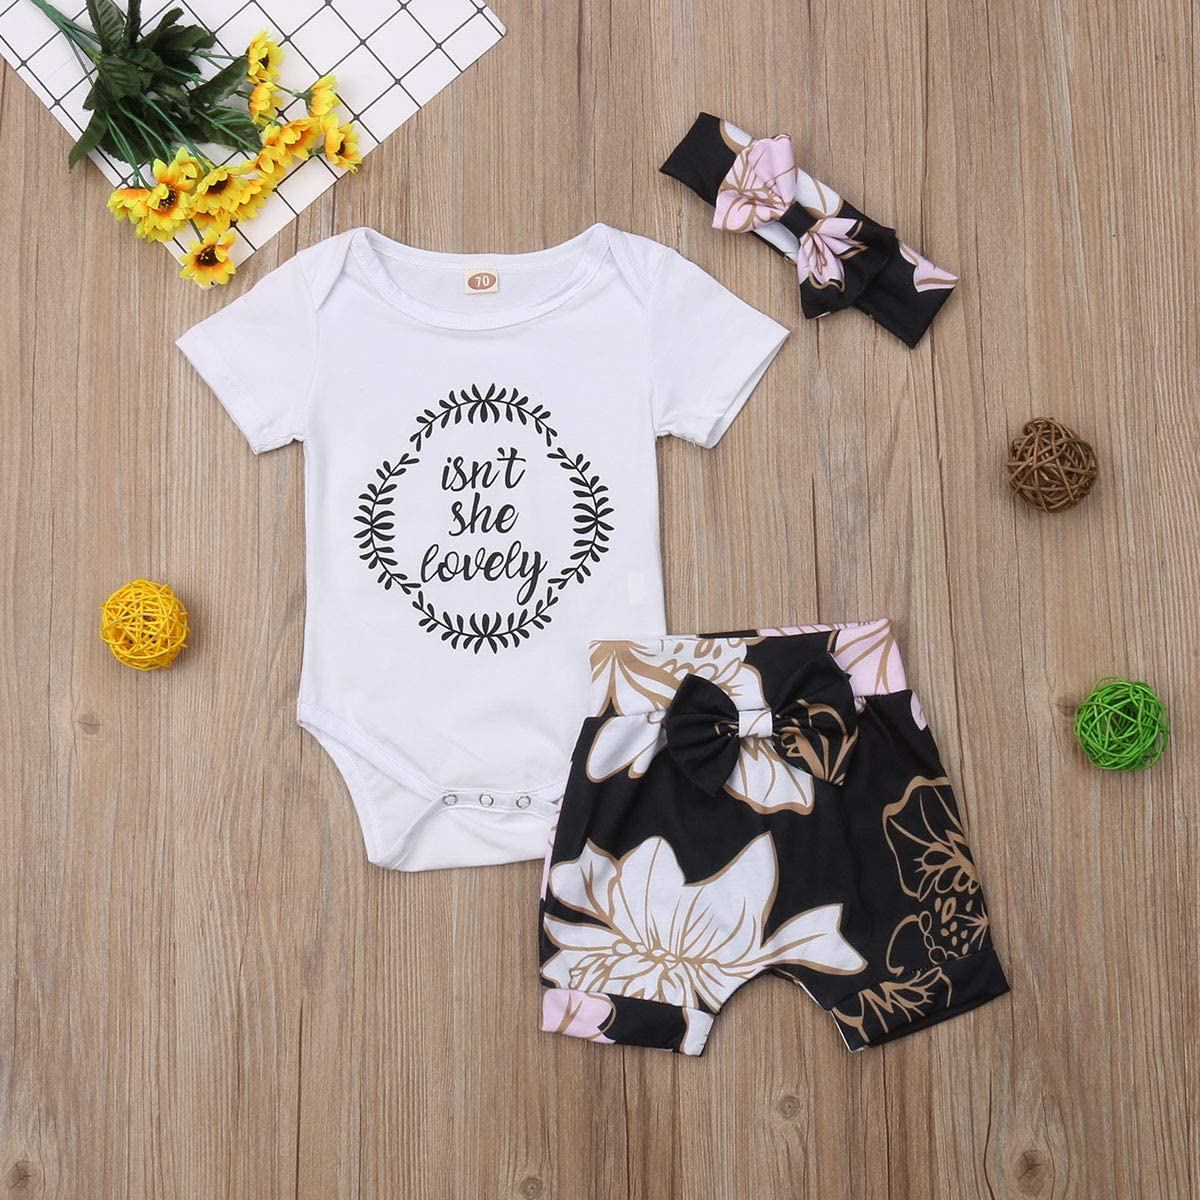 Toddler Baby Girls Outfits Letter Print Top Floral Shorts Bowknot Headbands Clothes Set